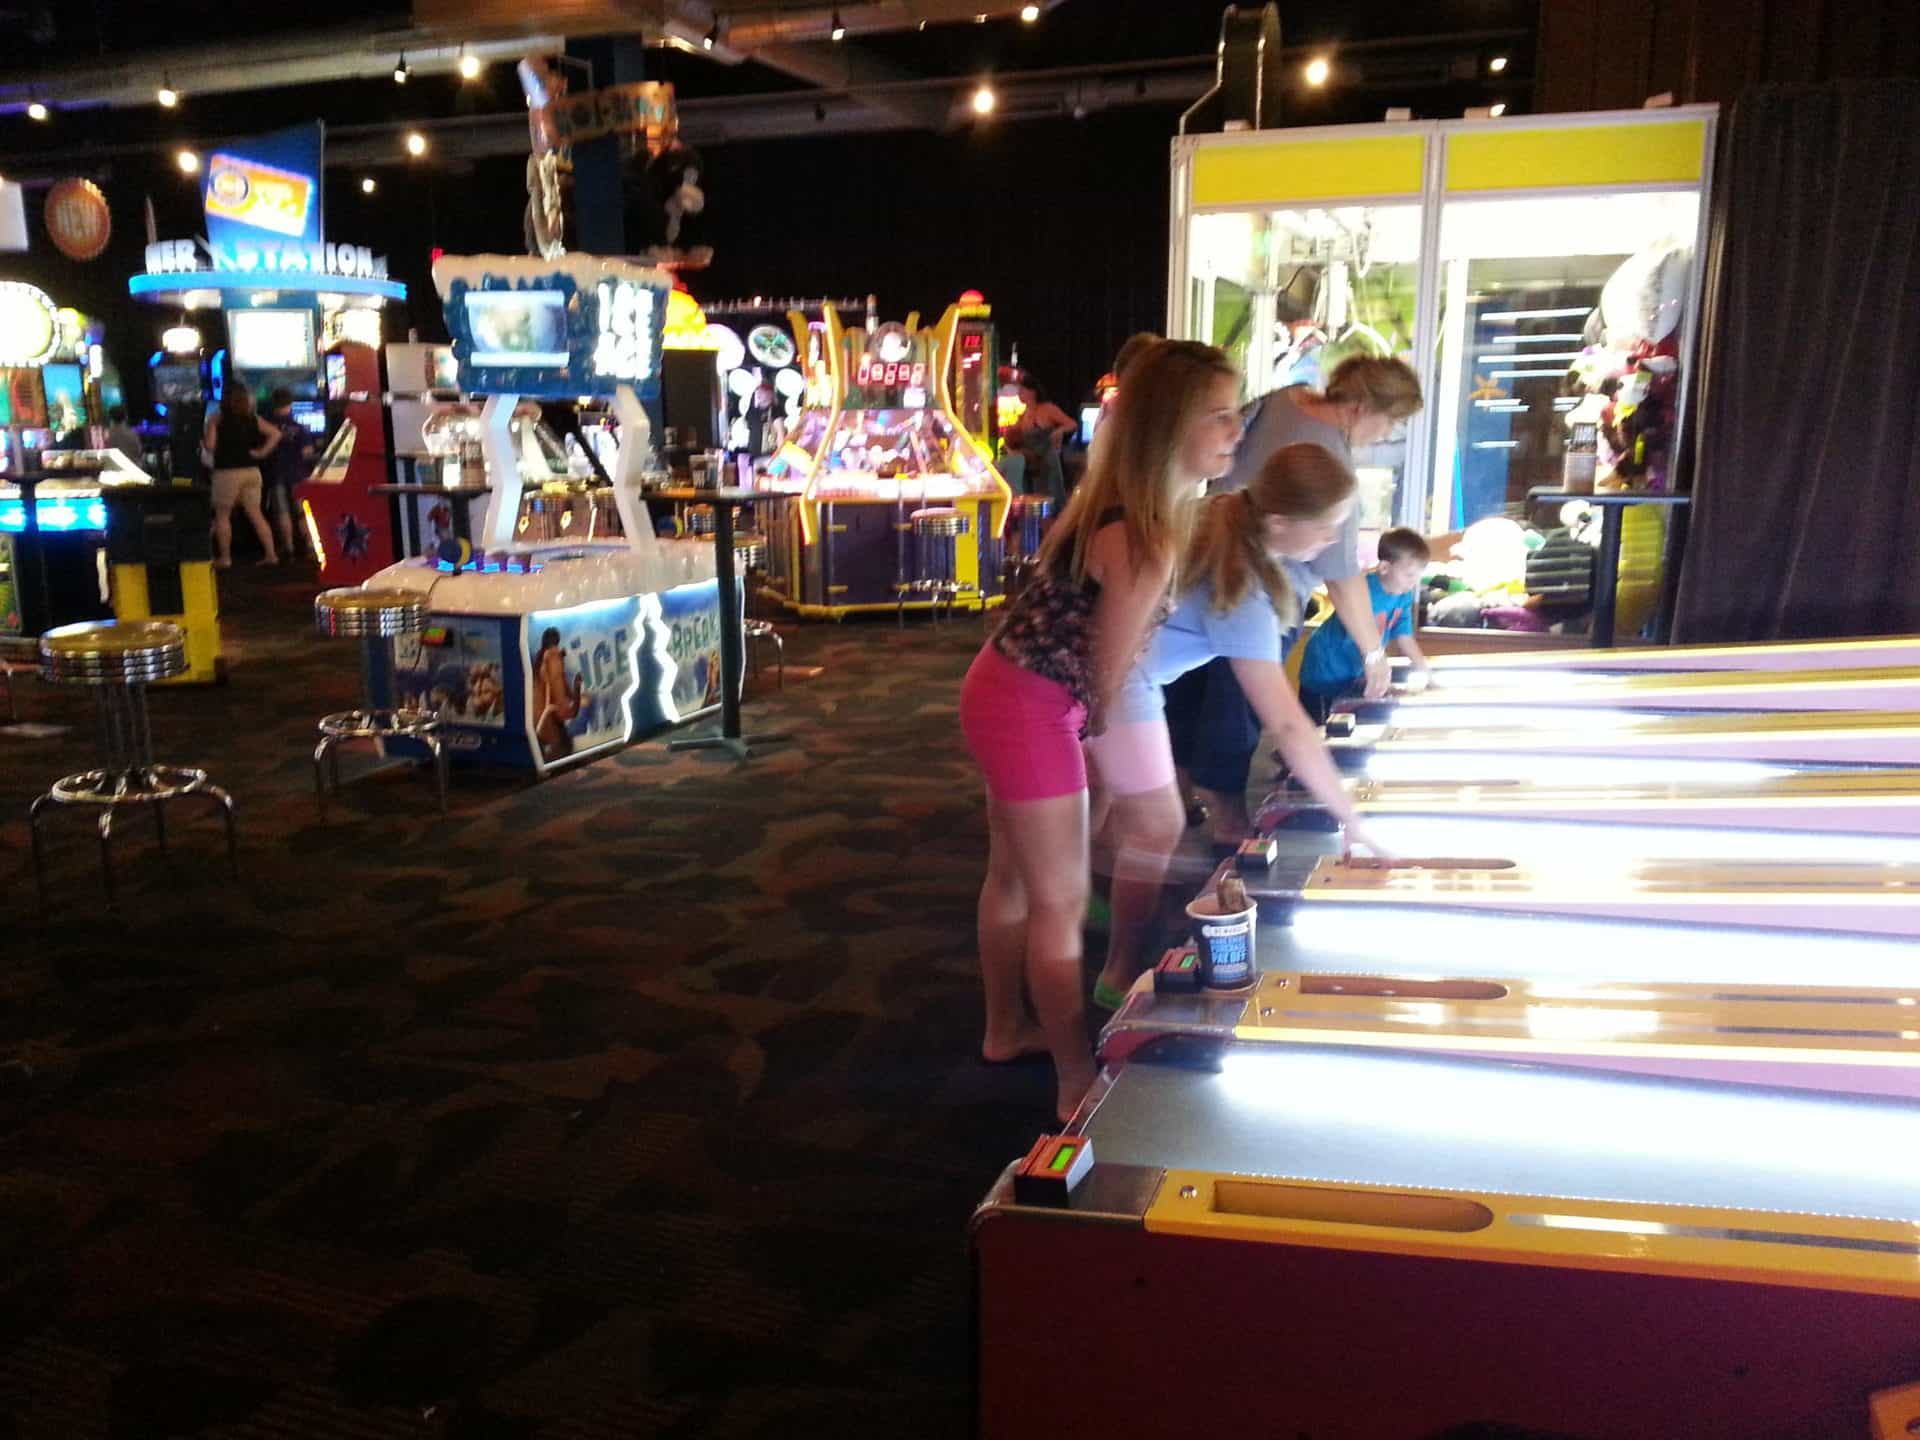 Dave and Busters More Games